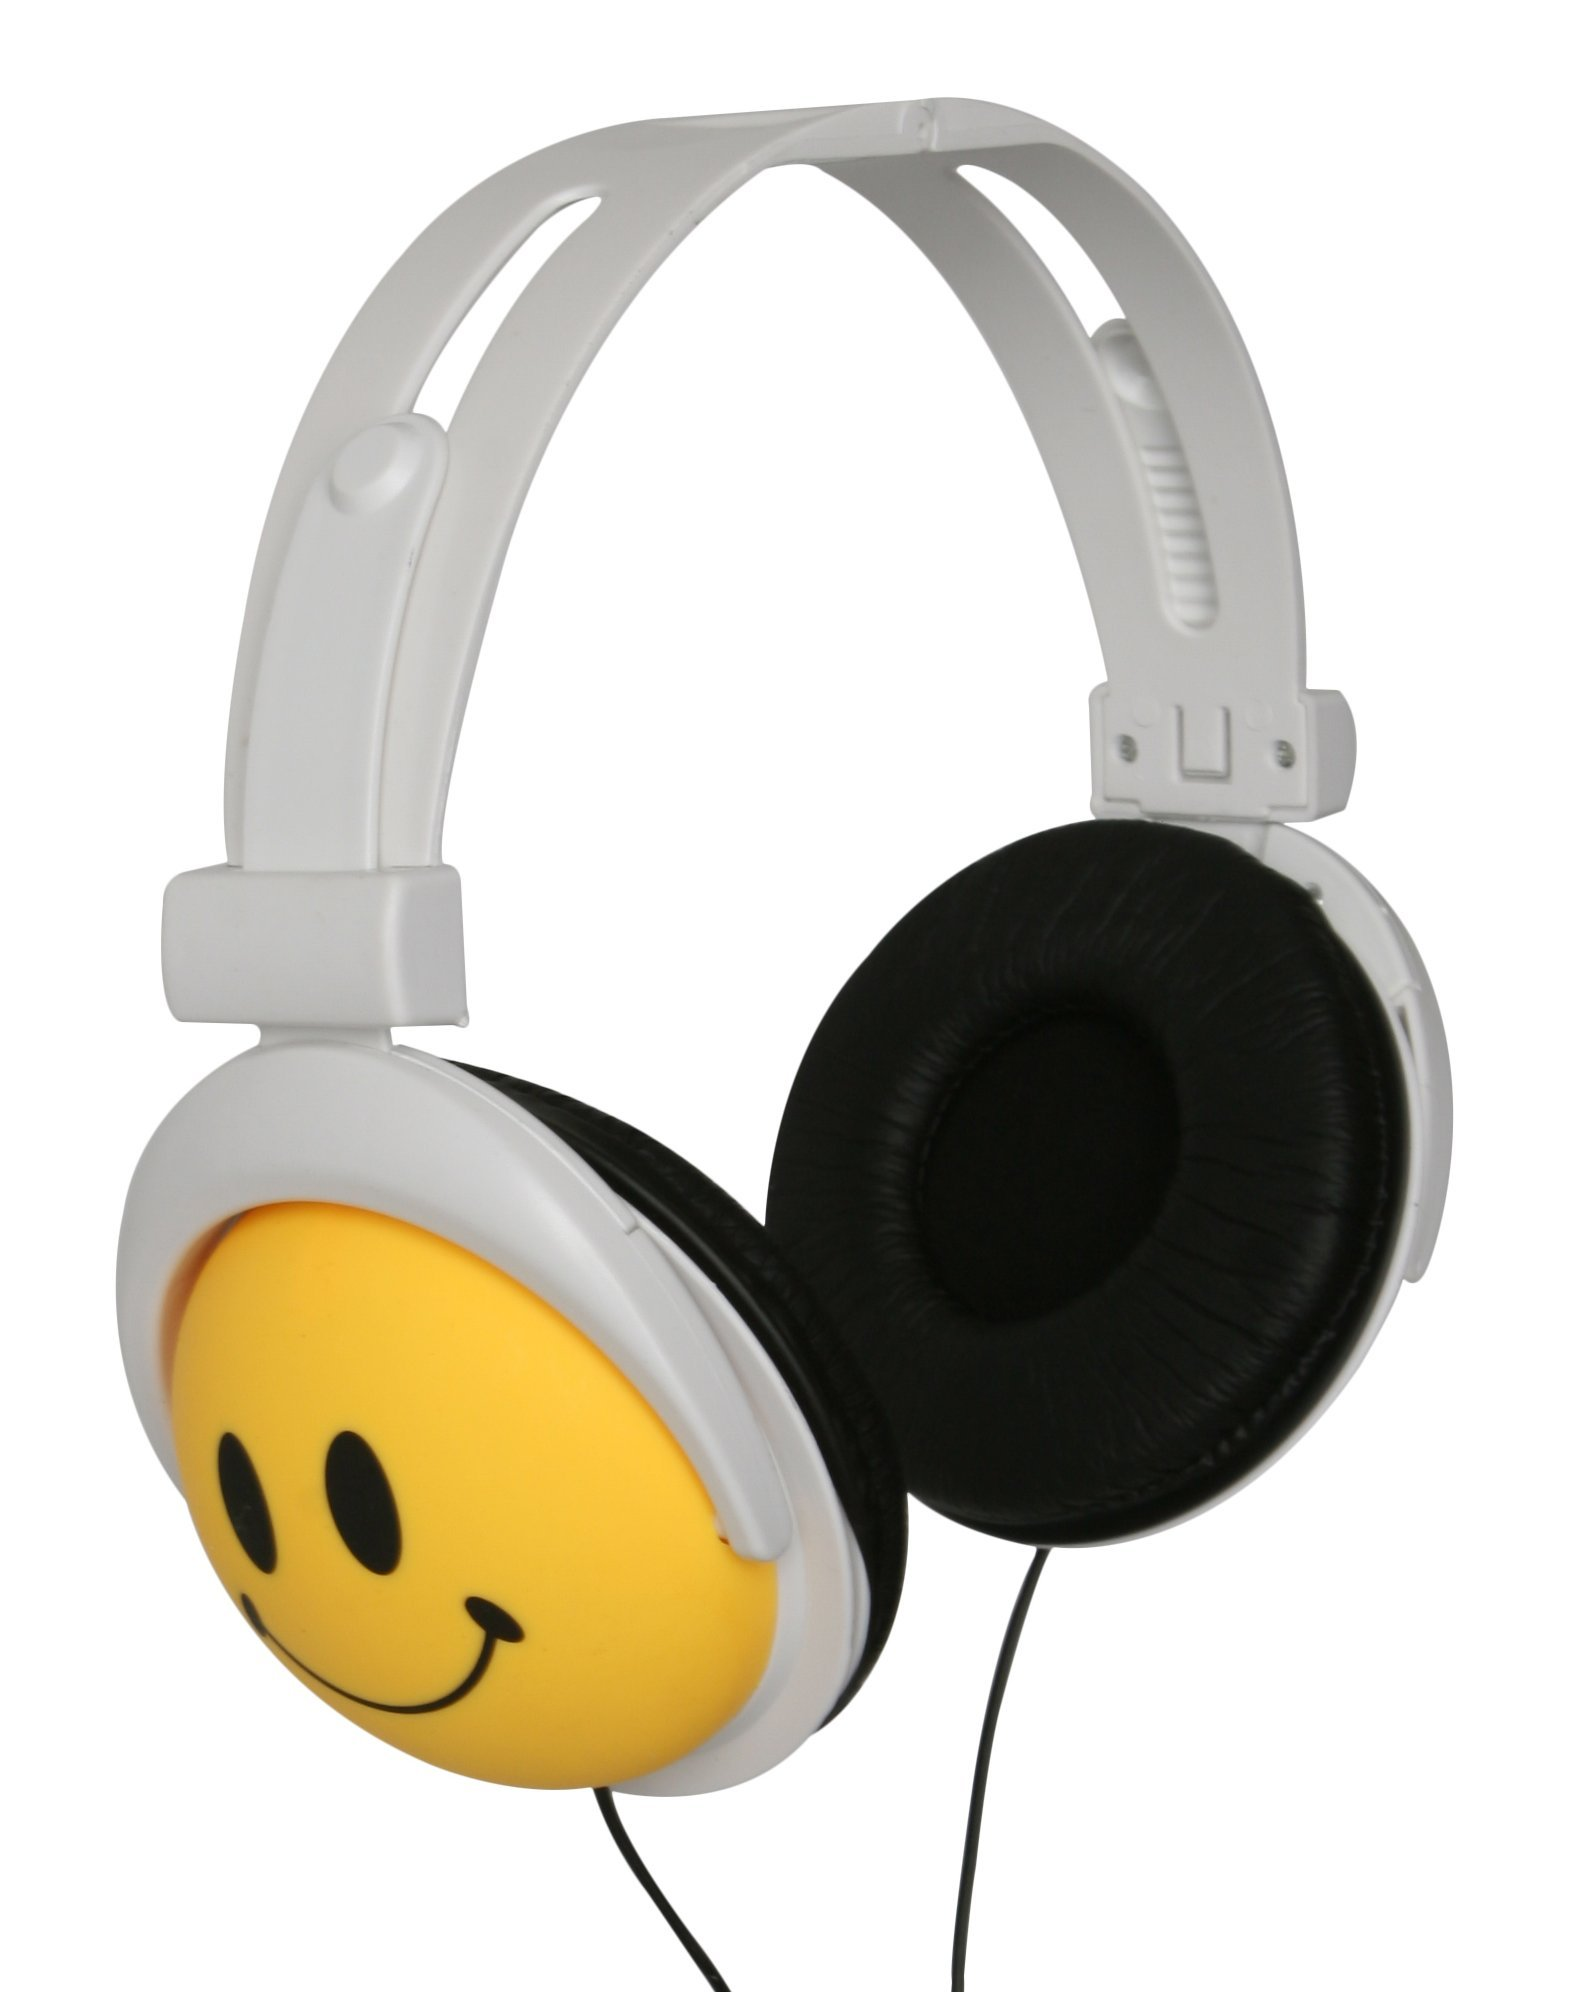 Original AUTHENTIC HAPPY CANZ Smiley Face Emoji Foldable Fully Adjustable Over-Ear Padded Headphones by Roxant by Roxant (Image #1)